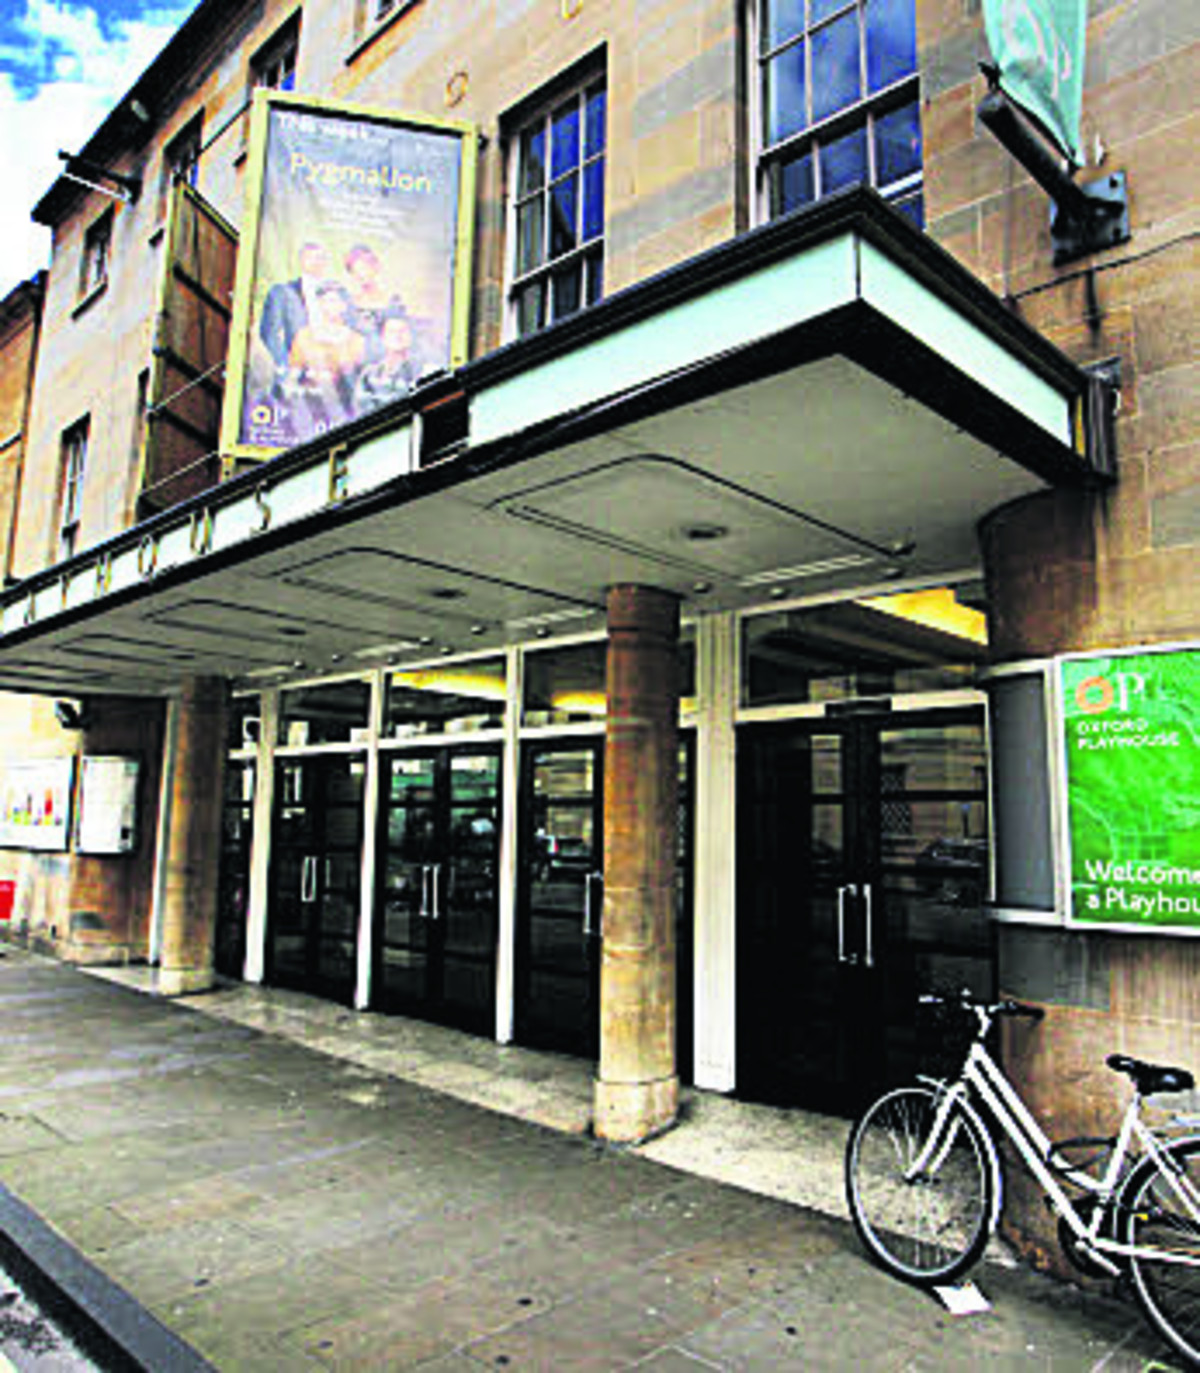 Work: The Oxford theatre wants more patronage